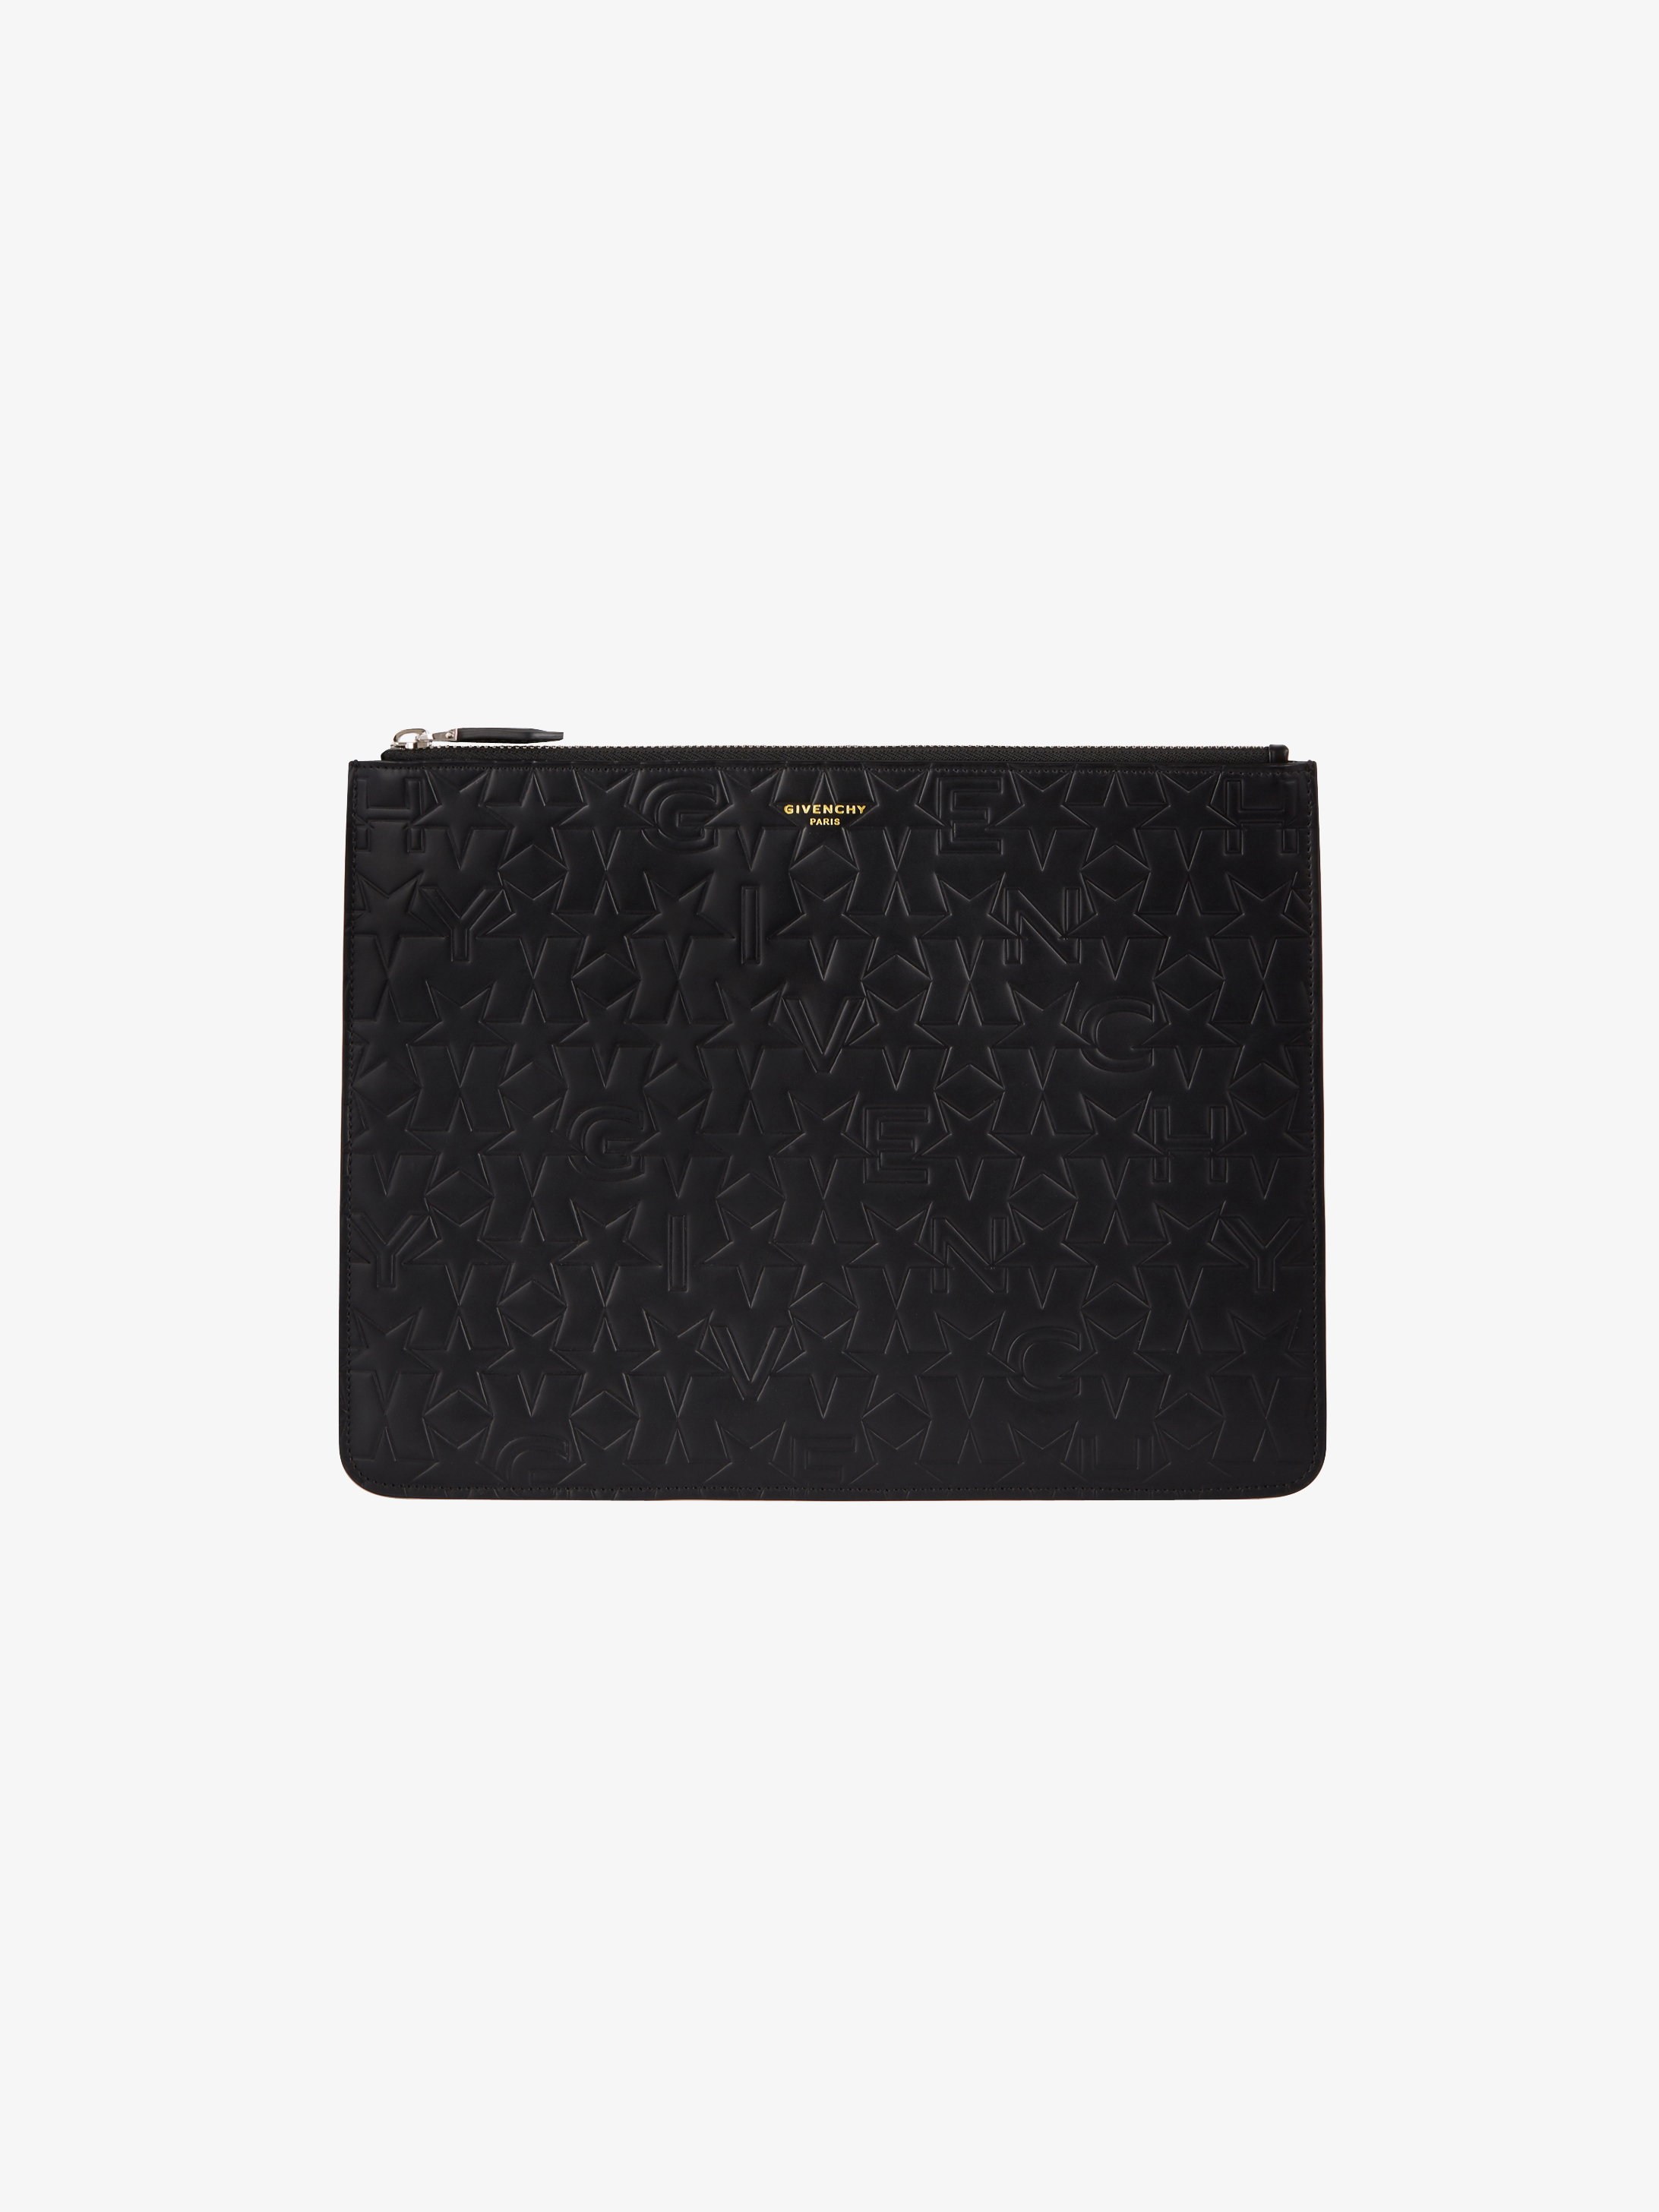 Large GIVENCHY & Stars embossed pouch